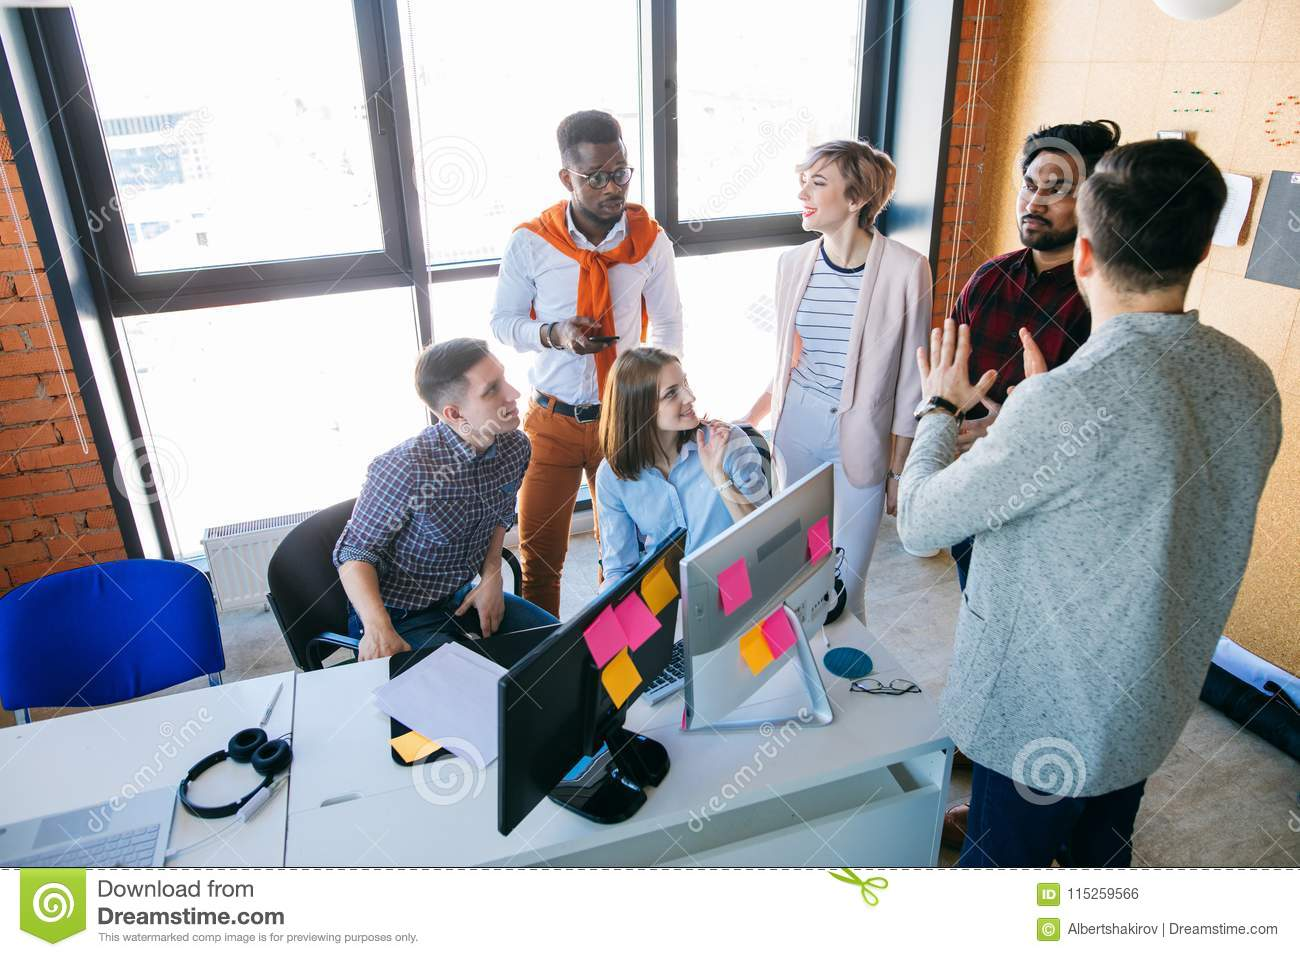 Web Designers Are Discussing Their Perspective Plans At Workplace Stock Photo Image Of Diverse Colleague 115259566